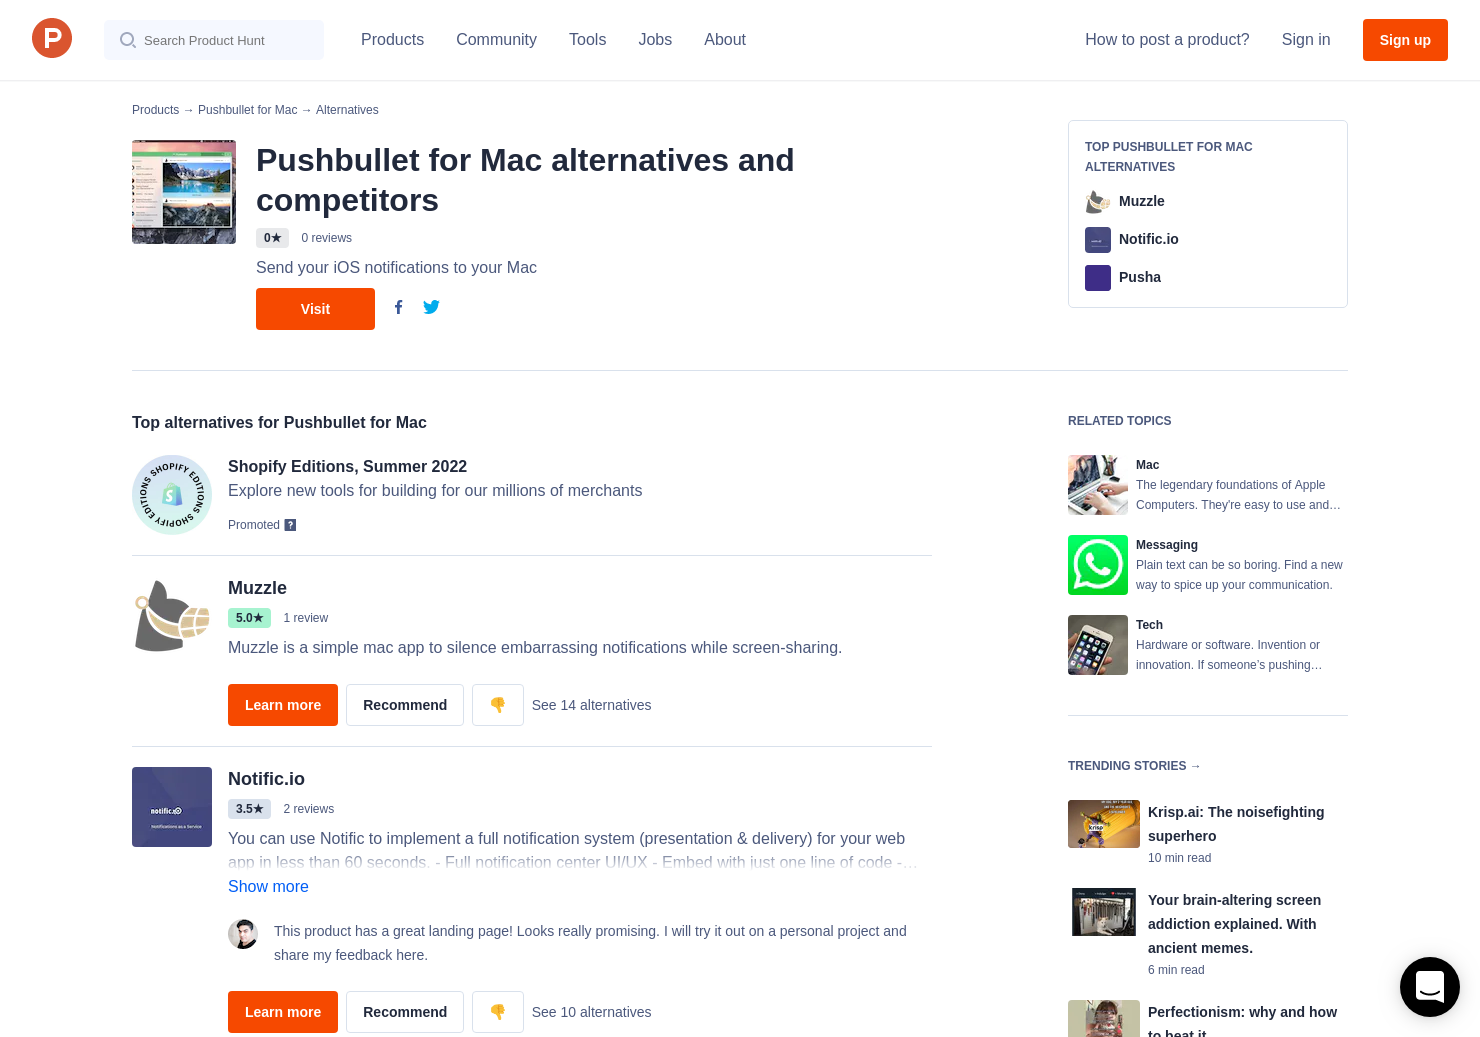 9 Alternatives to Pushbullet for Mac for Mac   Product Hunt